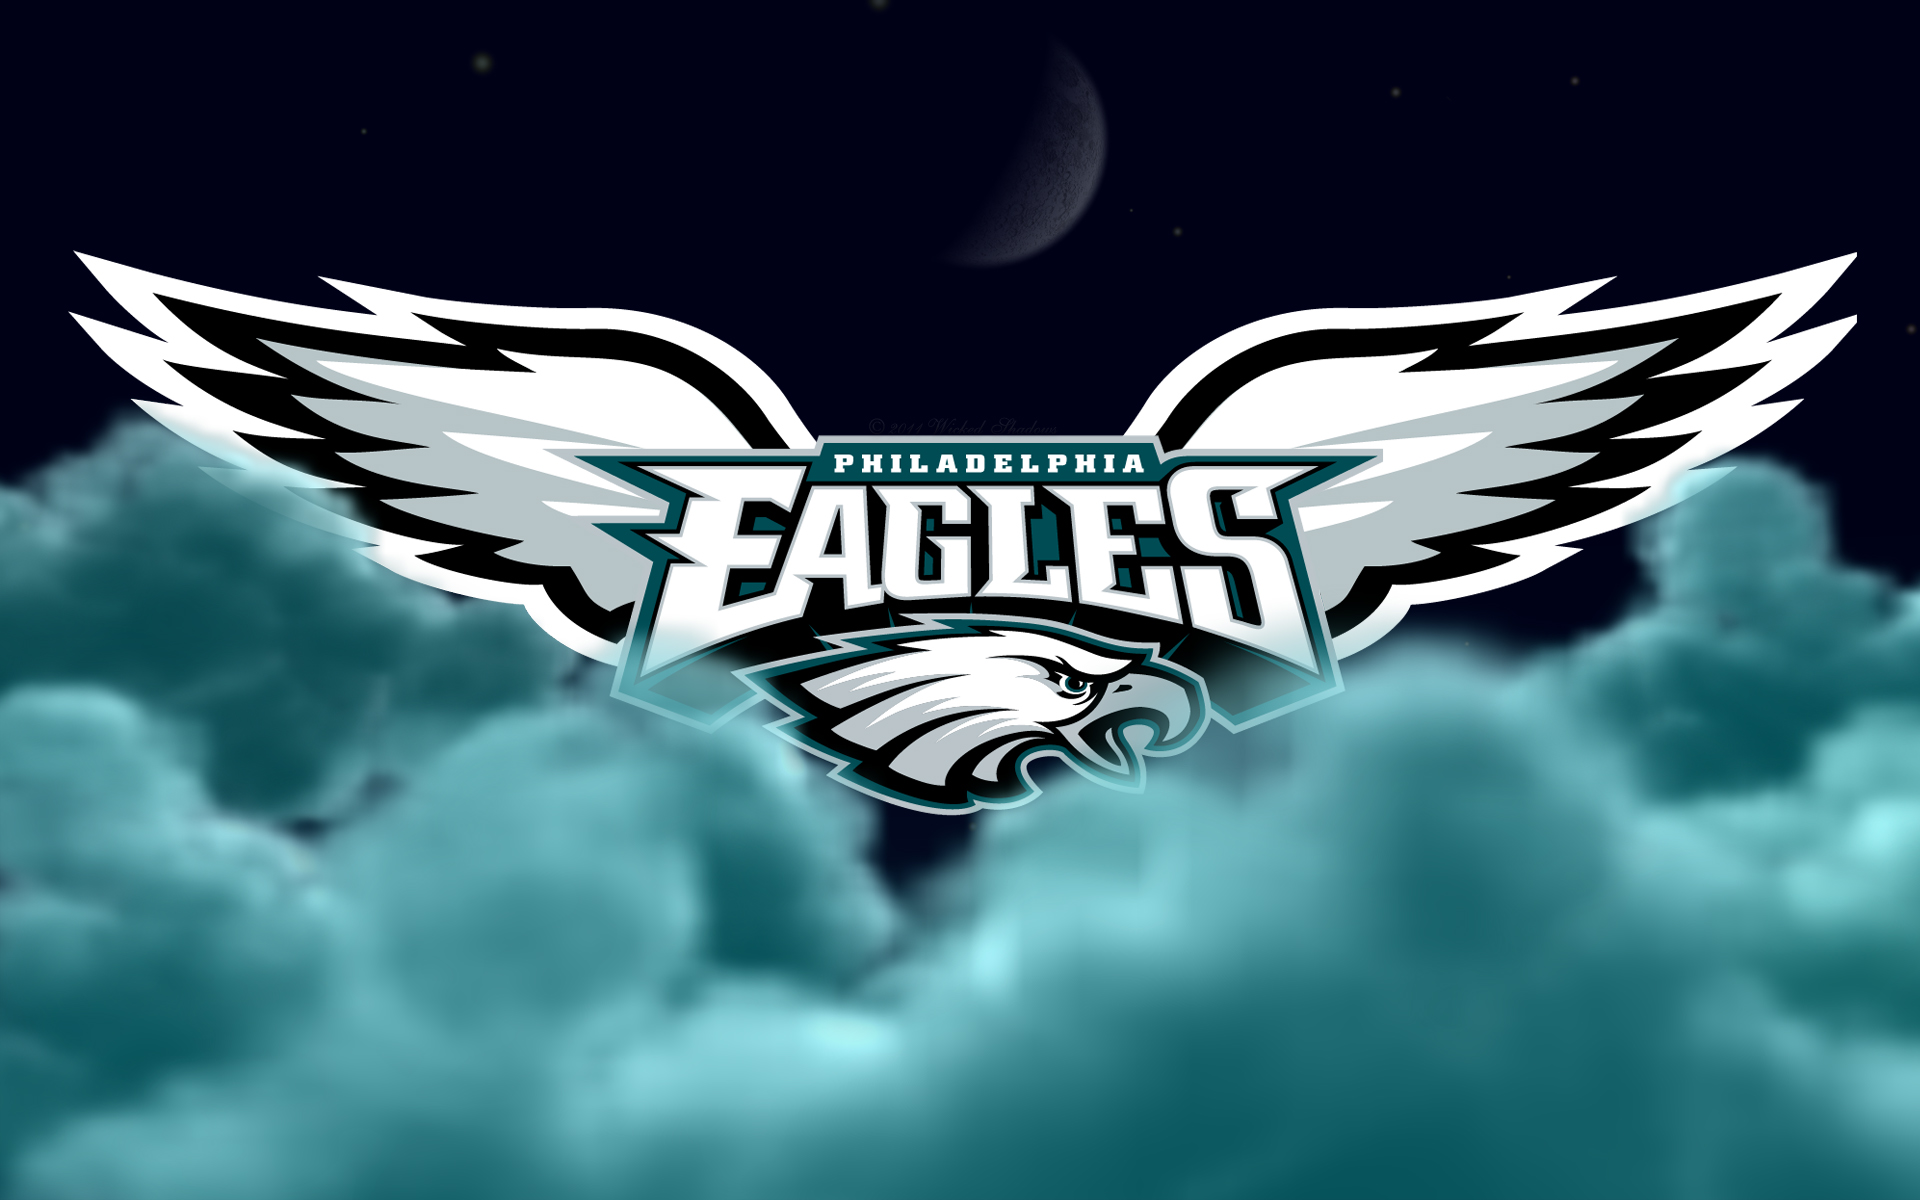 Philadelphia Eagles HD Wallpapers Pictures Hd Wallpapers 1920x1200